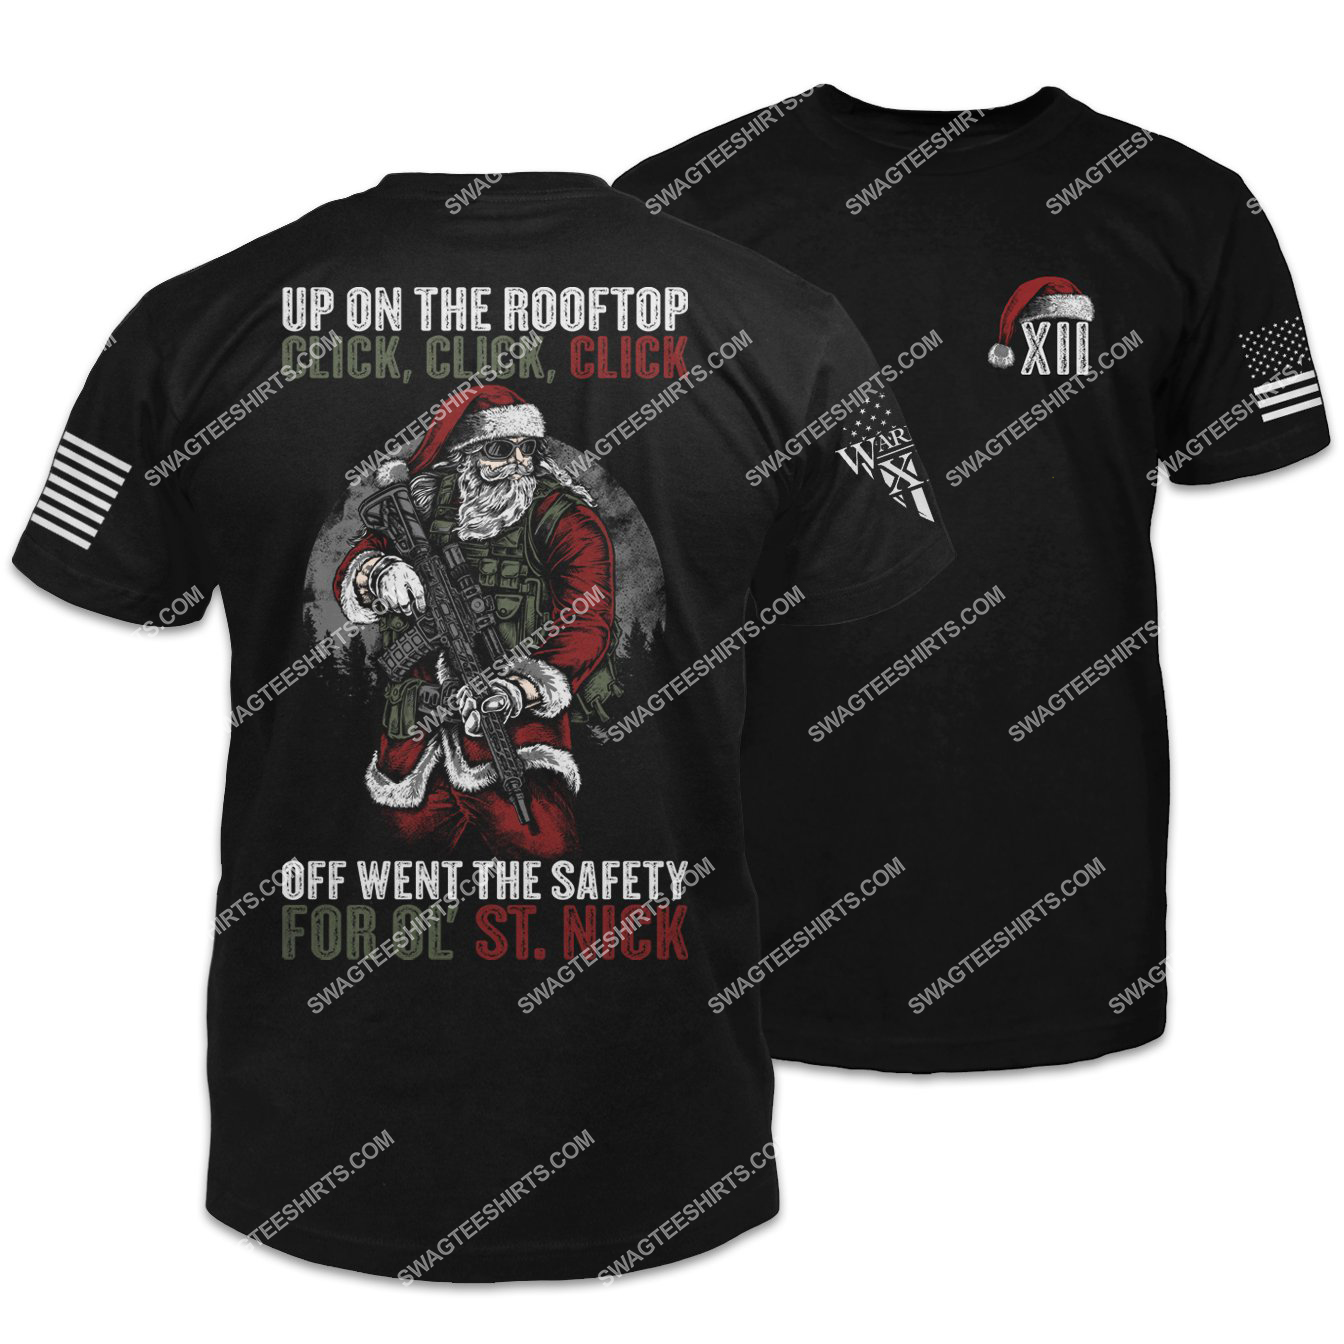 up on the rooftop off went the safety for ol' st nick santa on patrol shirt 1 - Copy (3)